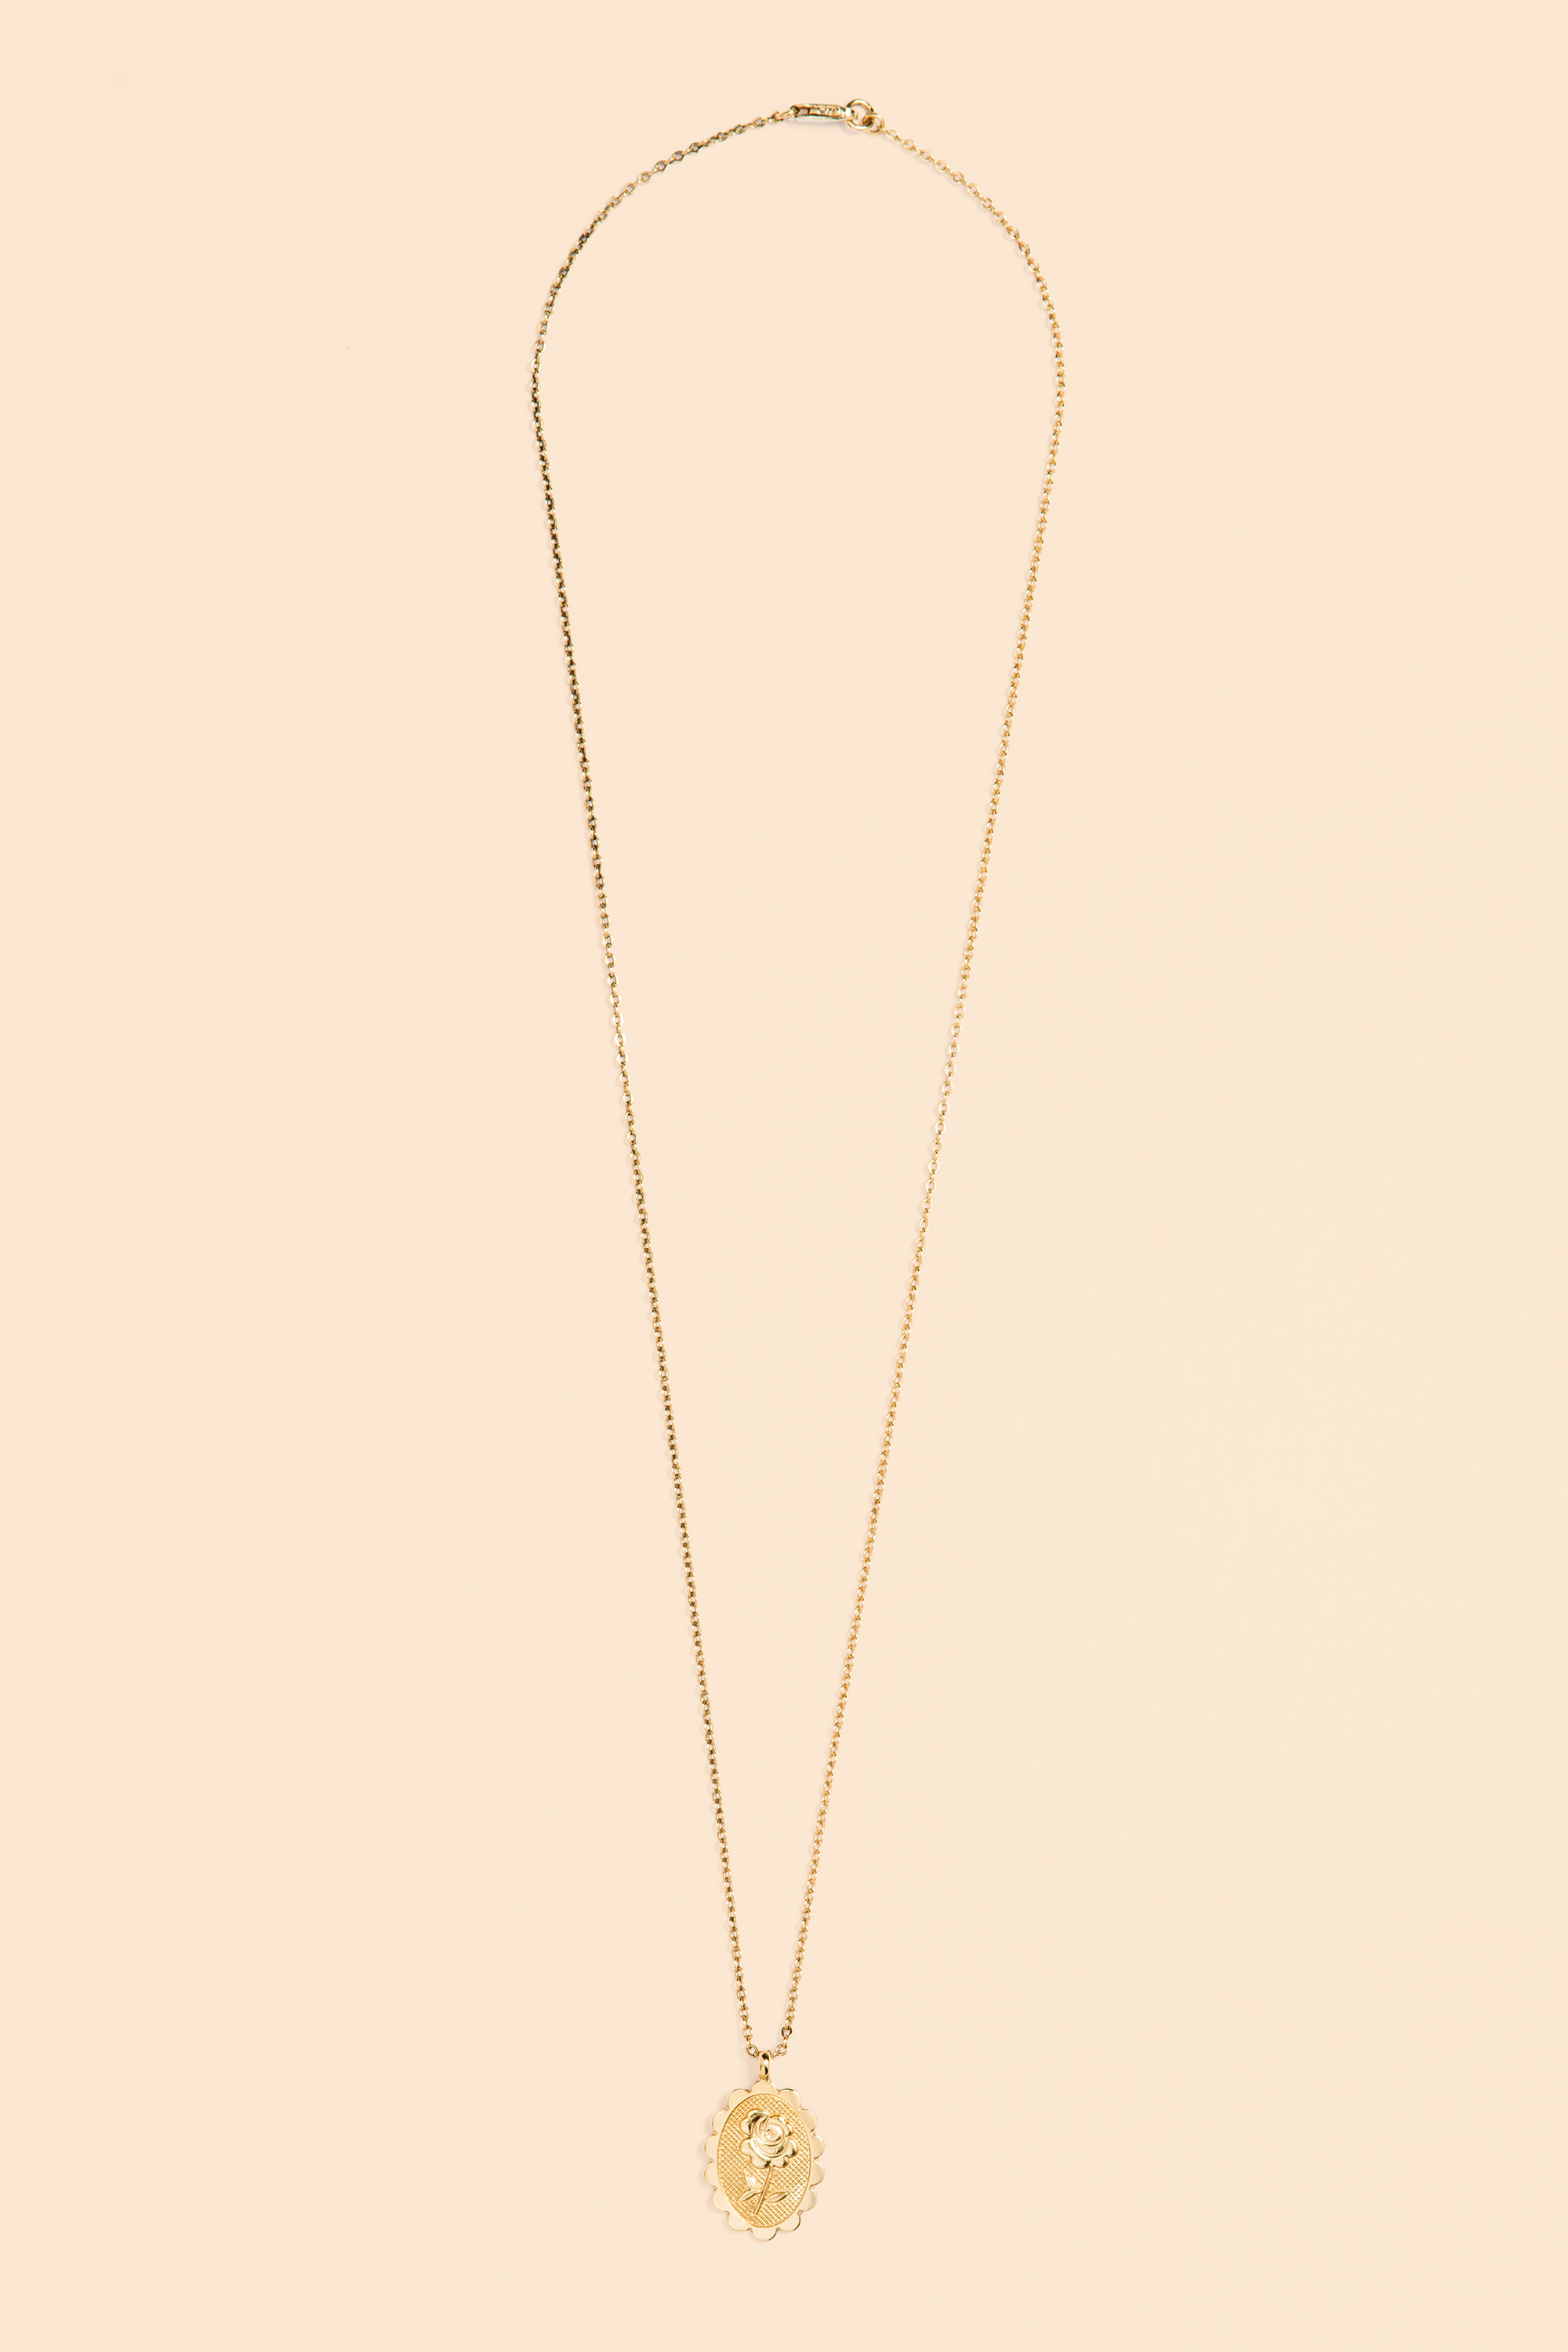 SILVANA necklace